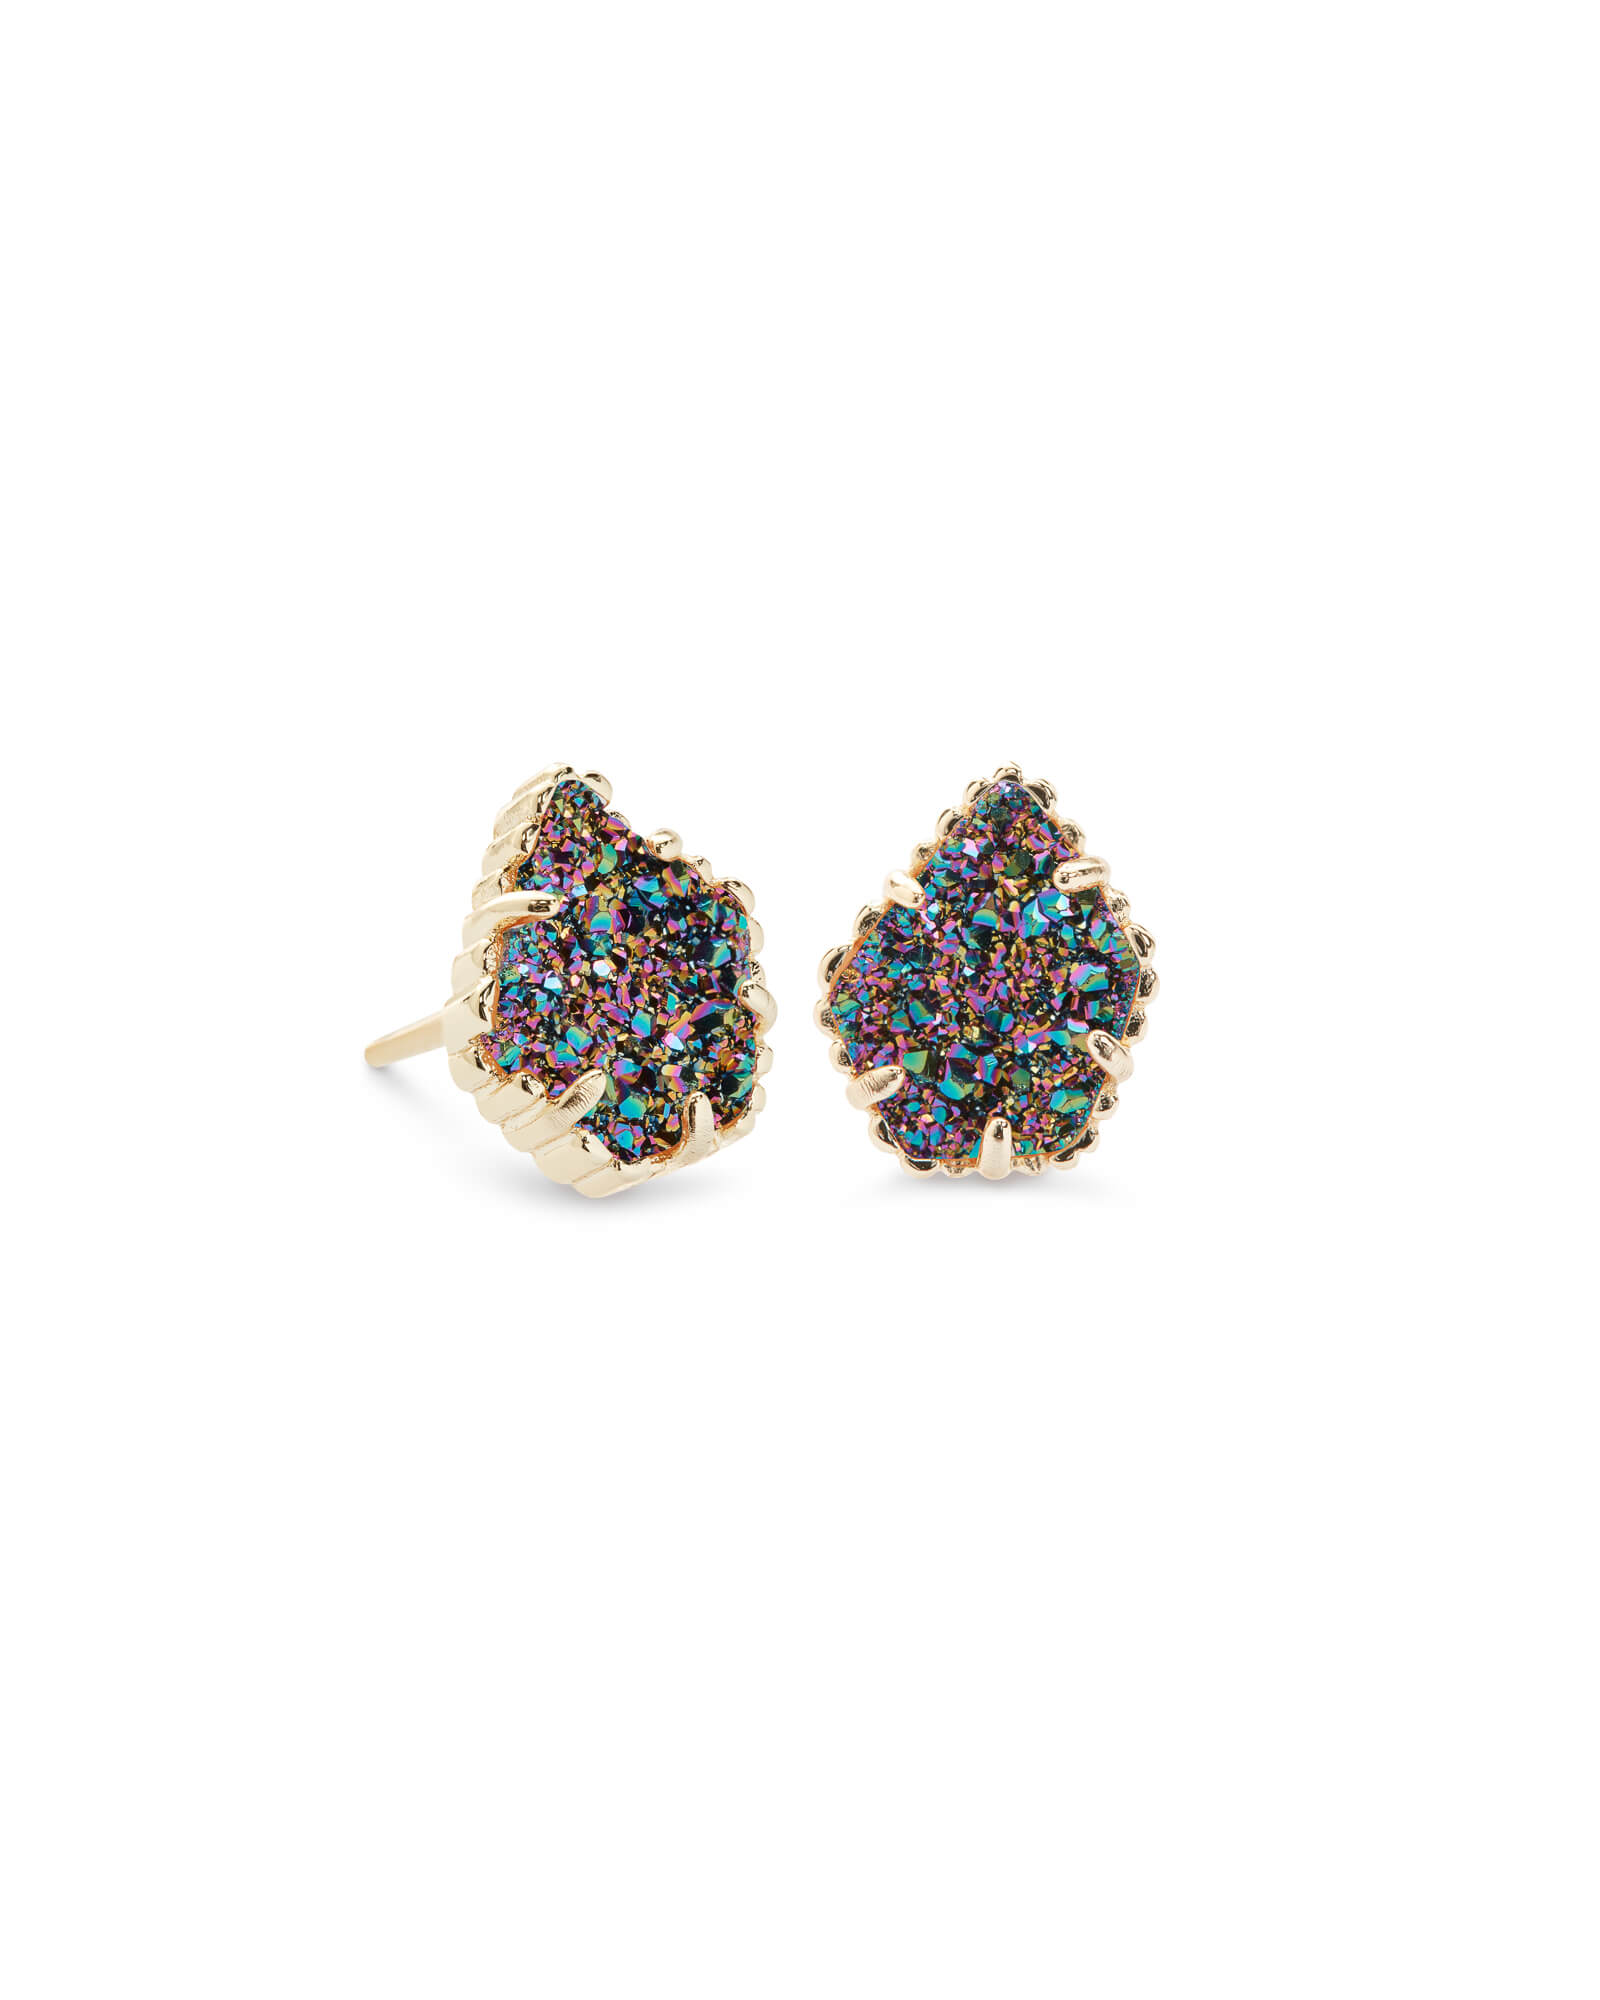 Tessa Gold Stud Earrings in Multicolor Drusy